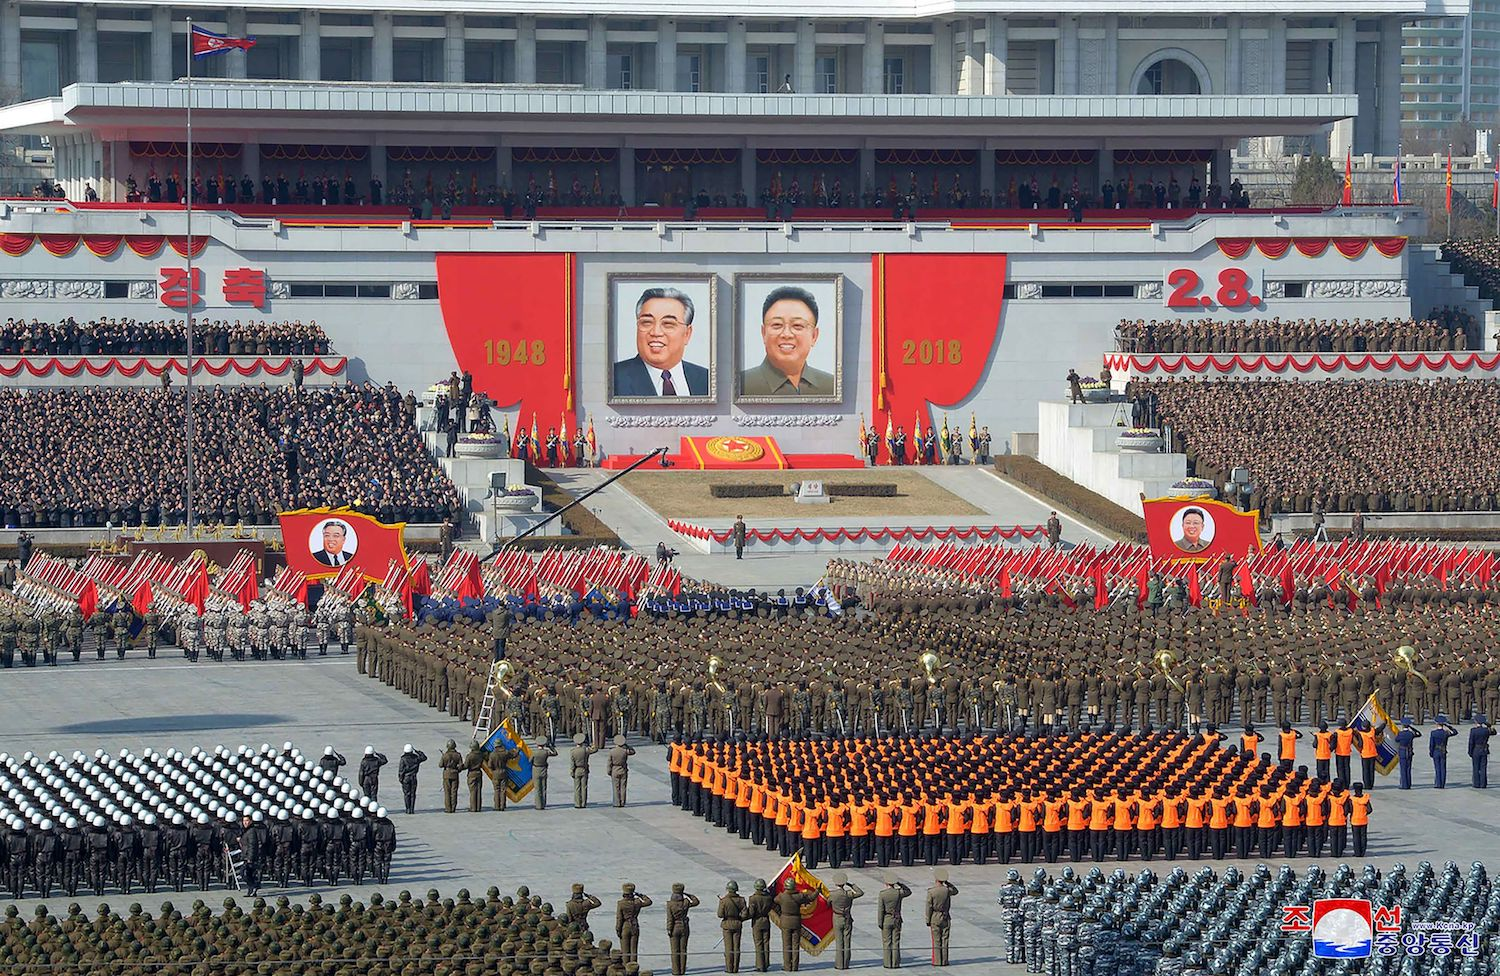 A military parade to marking the 70th anniversary of the Korean People's Army at Kim Il Sung Square in Pyongyang on Feb. 8, 2018. (Korean Central News Agency)